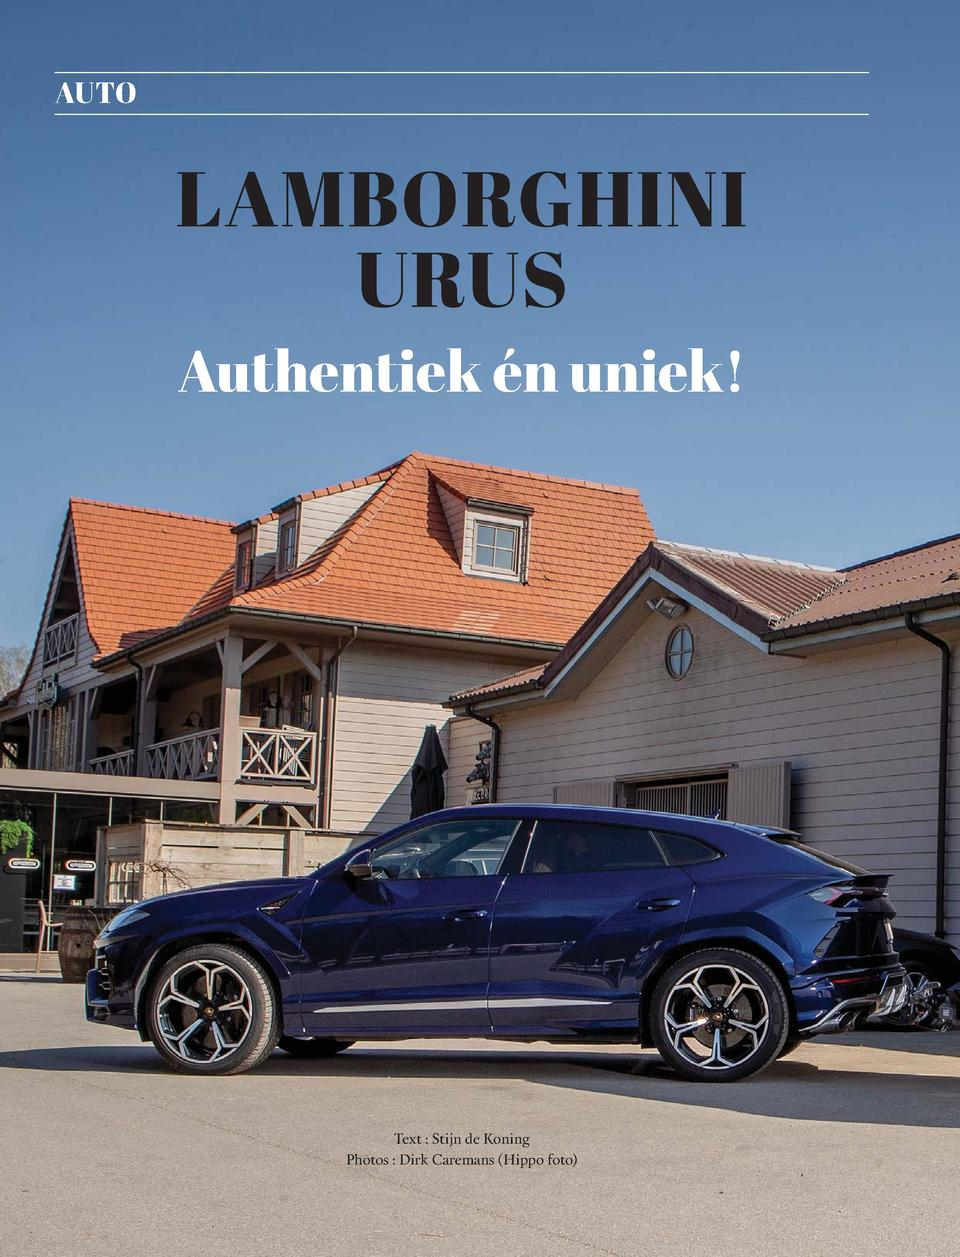 106  AUTO  LAMBORGHINI URUS Authentiek   n uniek   Text   Stijn de Koning Photos   Dirk Caremans  Hippo foto